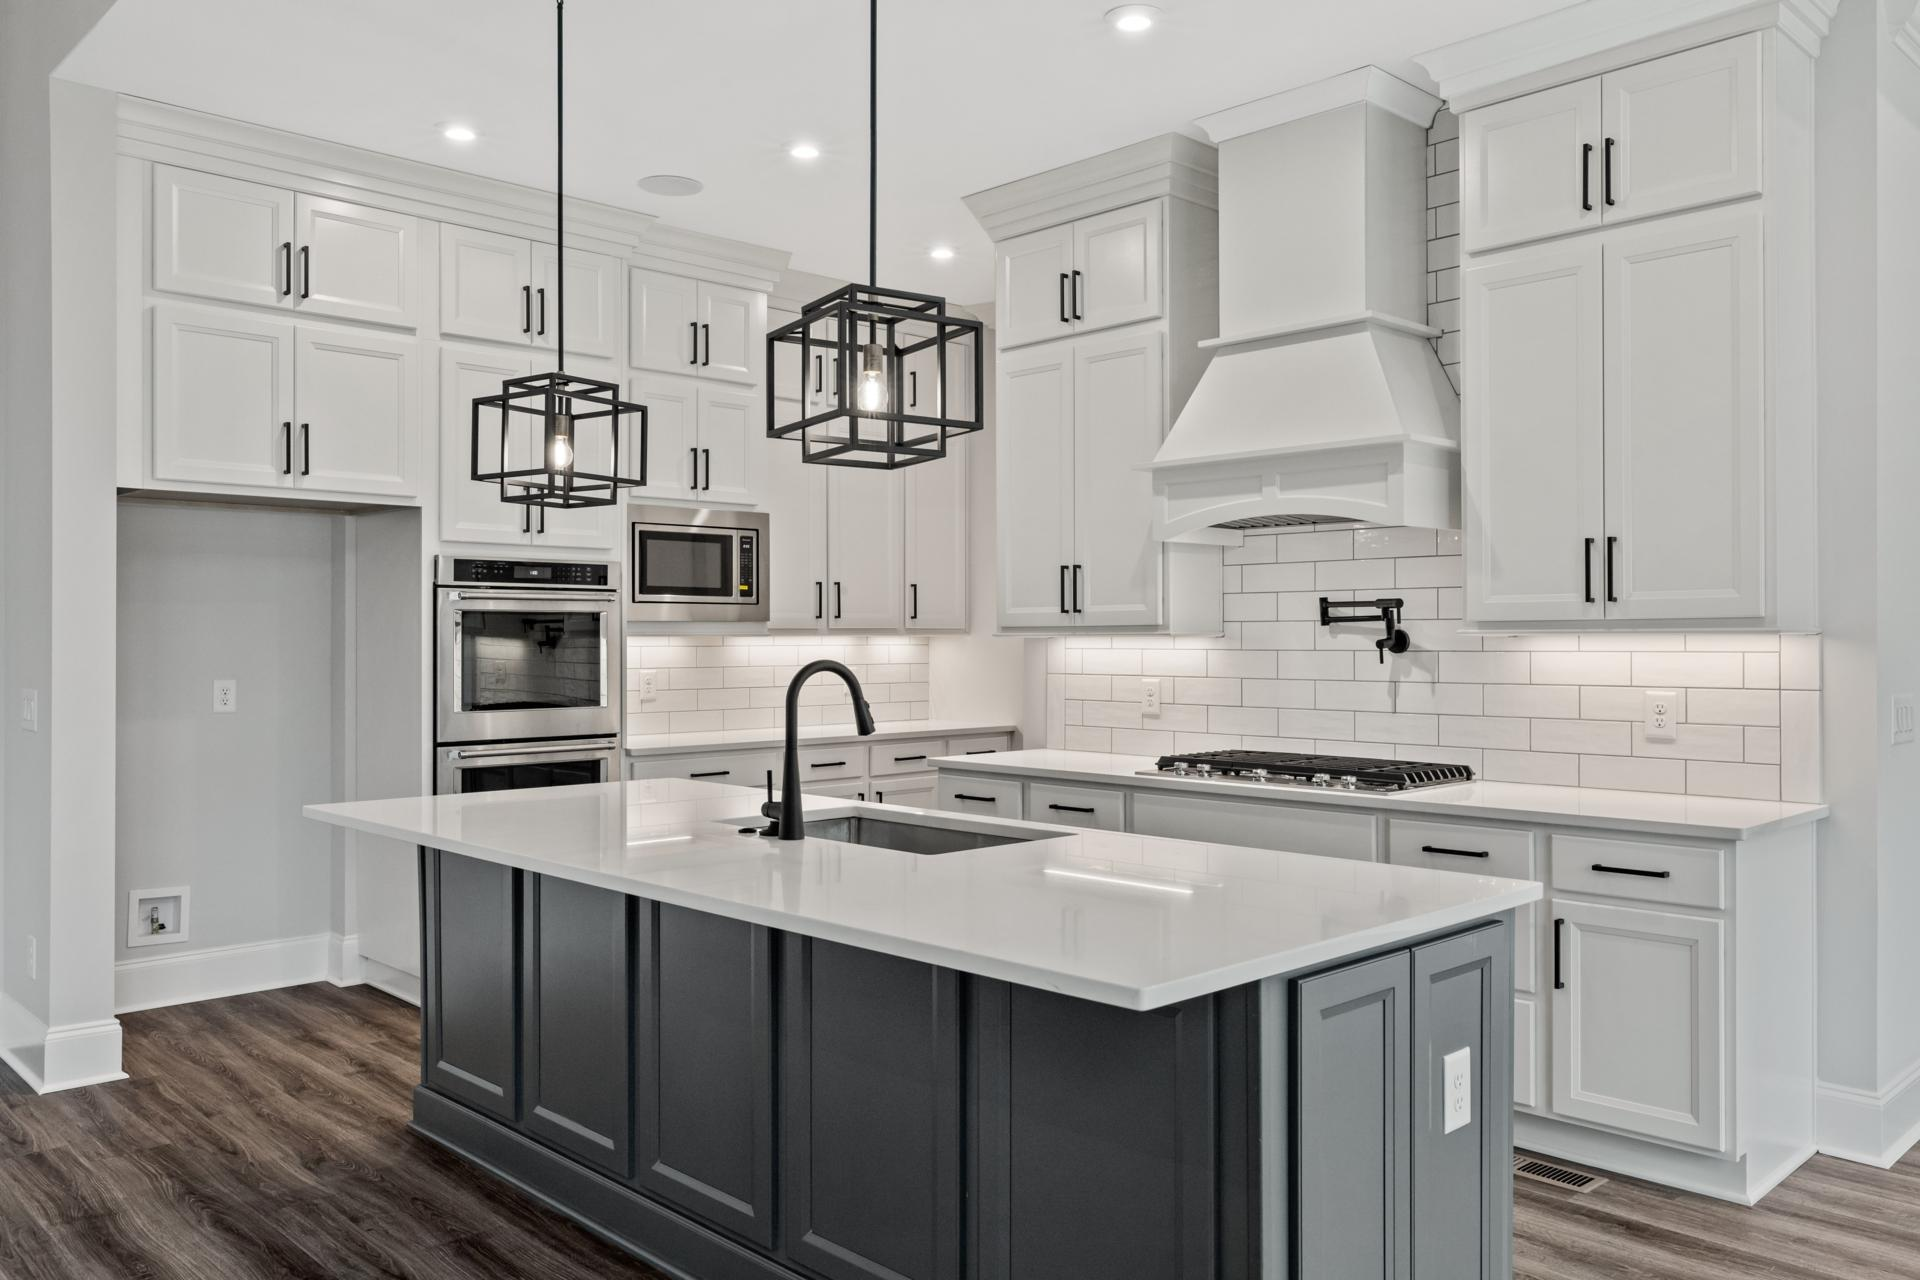 Kitchen featured in the Belvidere By Drees Homes in Nashville, TN